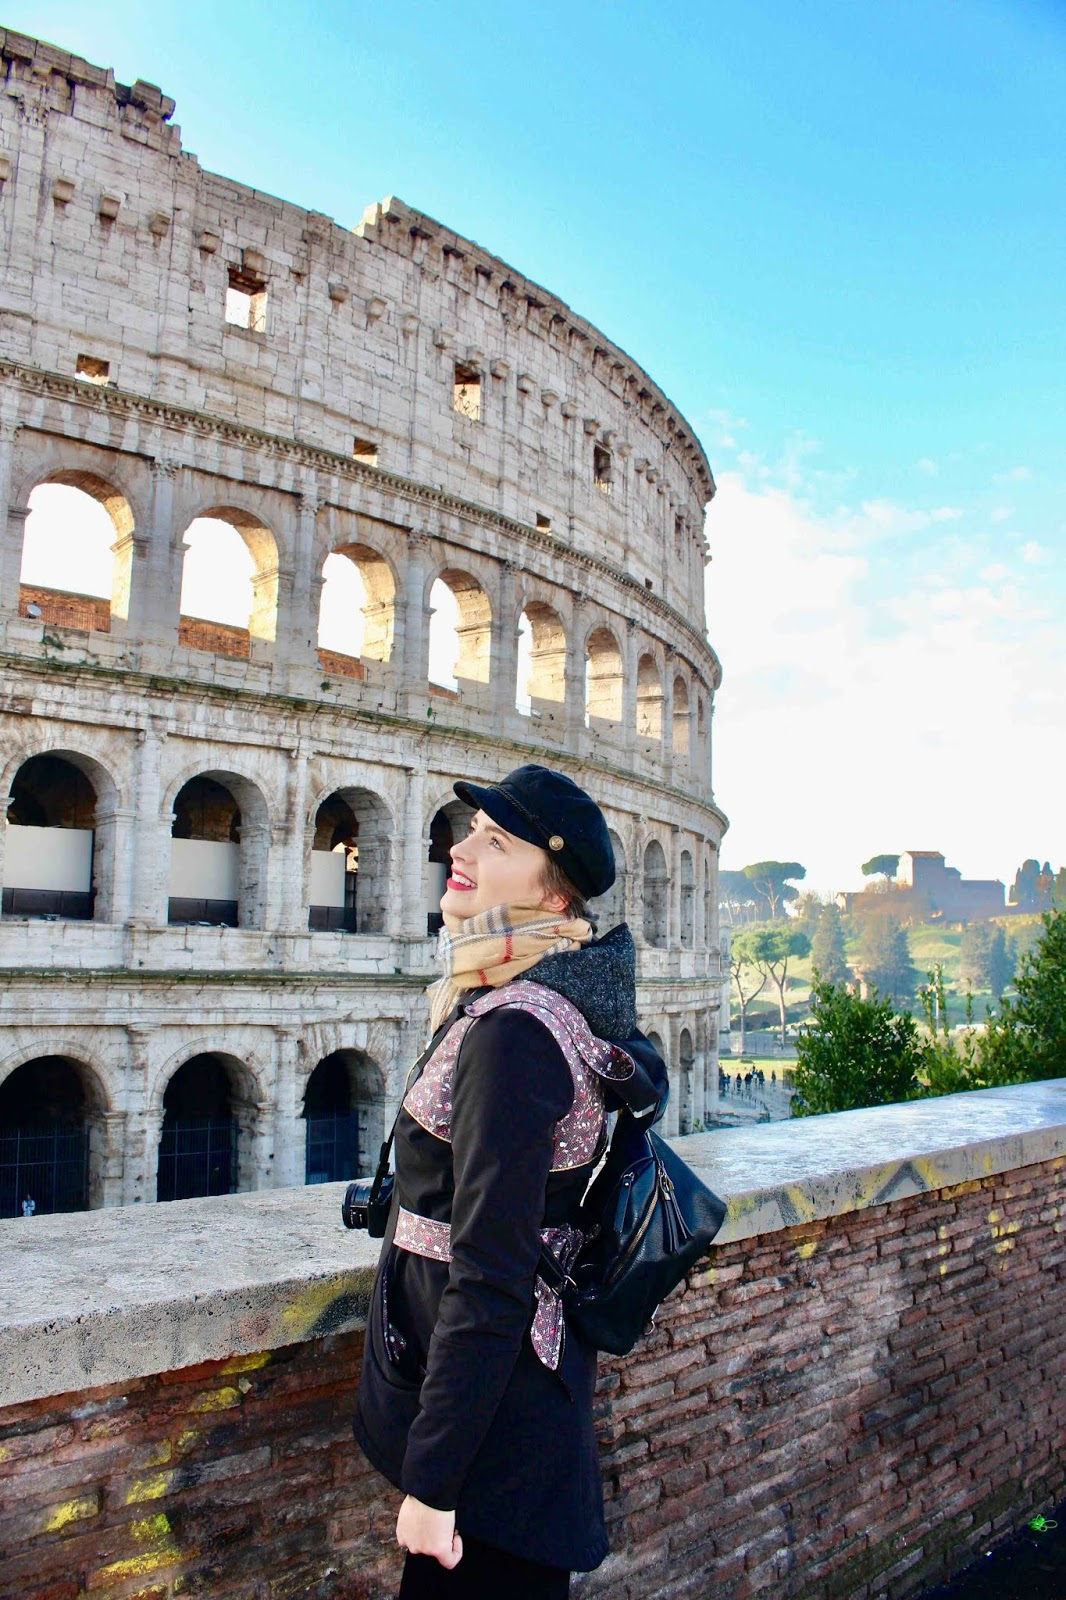 Girl in front of Colosseum with camera and blue sky in background